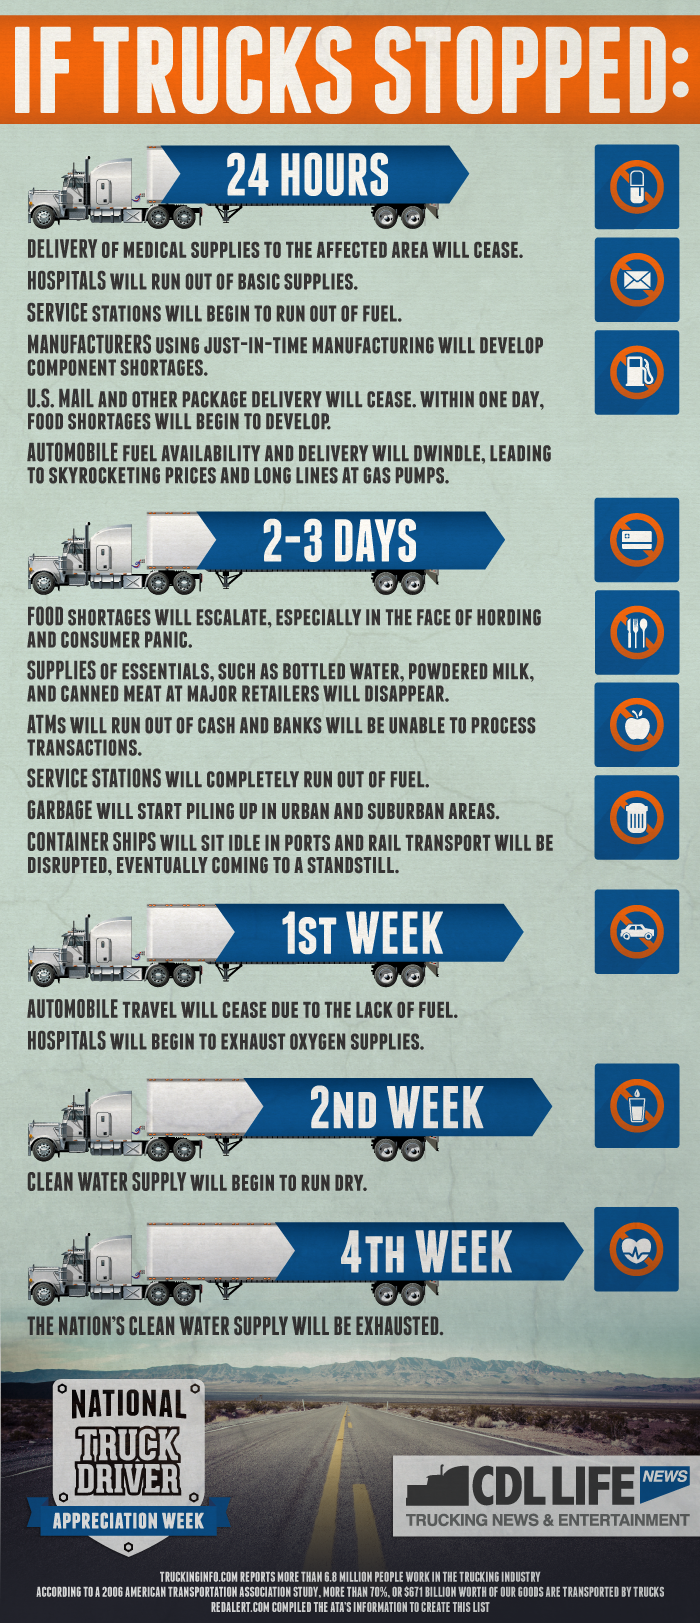 If-Trucks-Stopped-Infographic.png